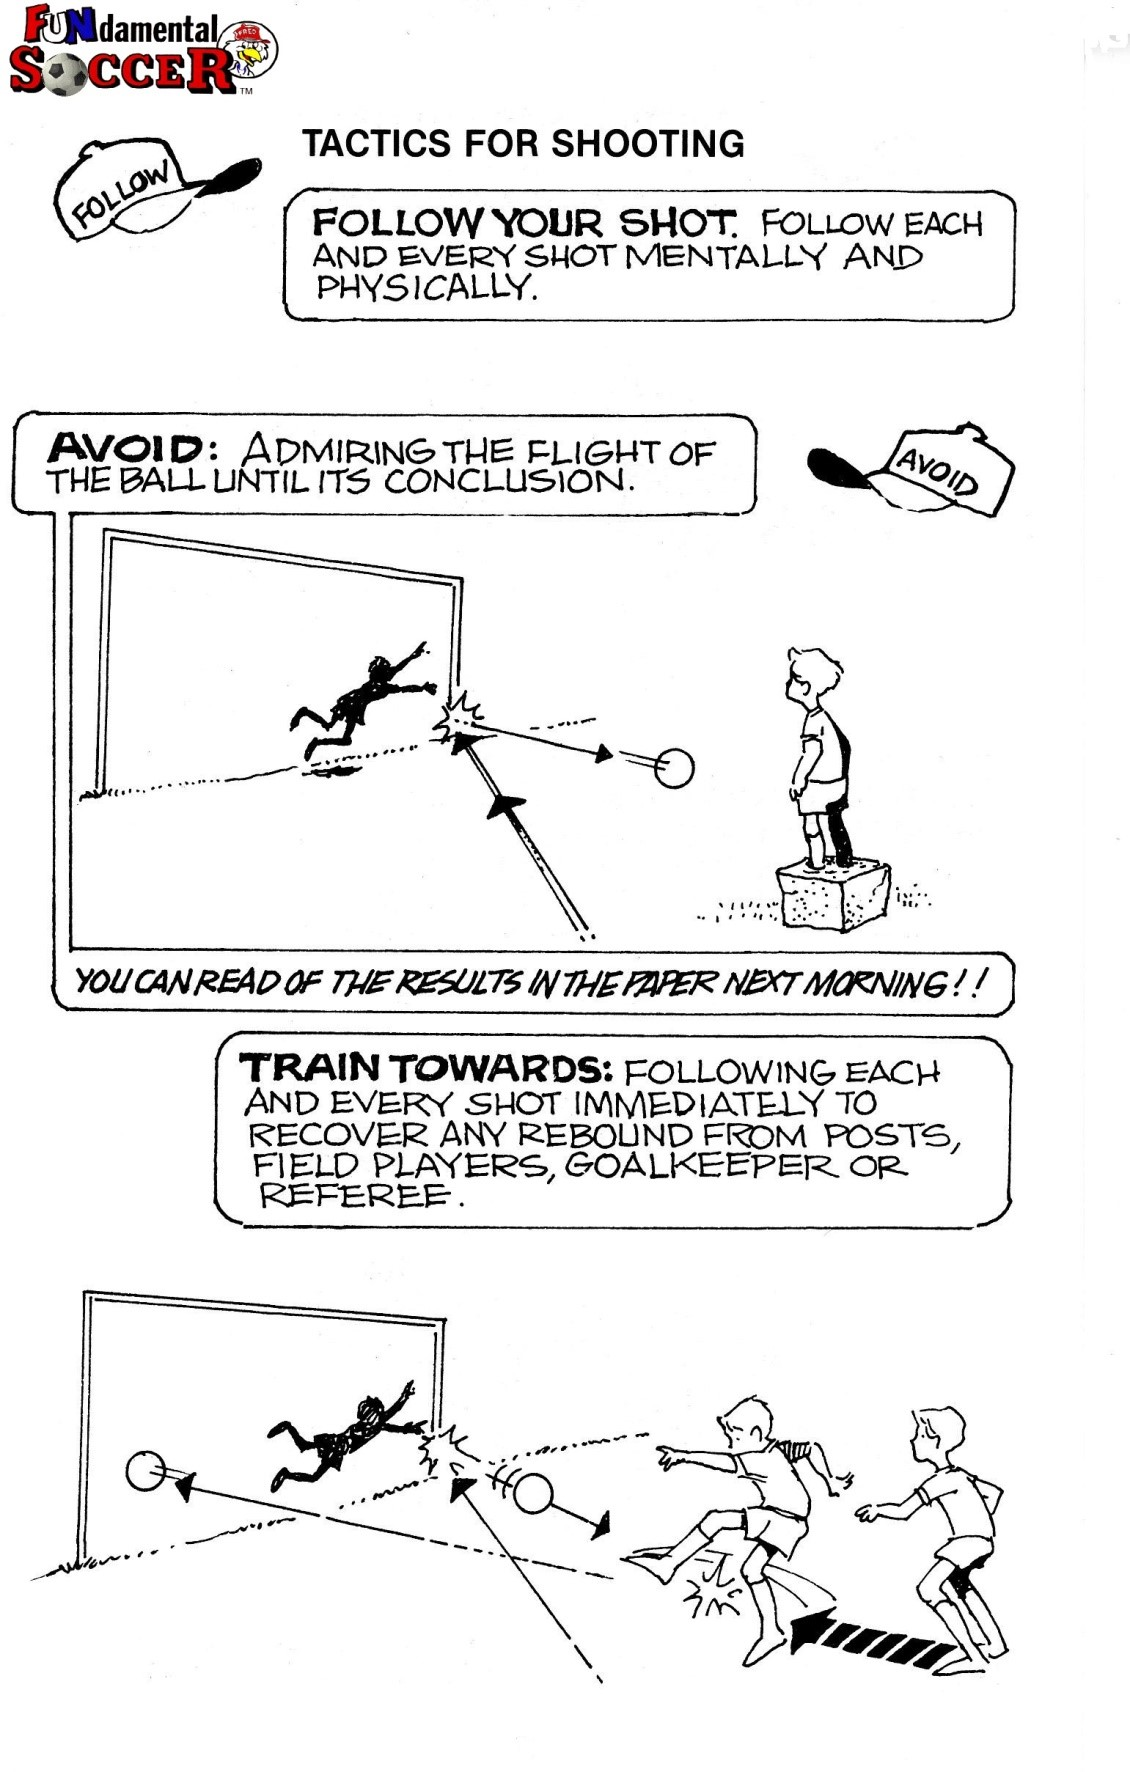 Why Coaching U-6 & U-8 Soccer to always 'Follow your Shot' is Critical